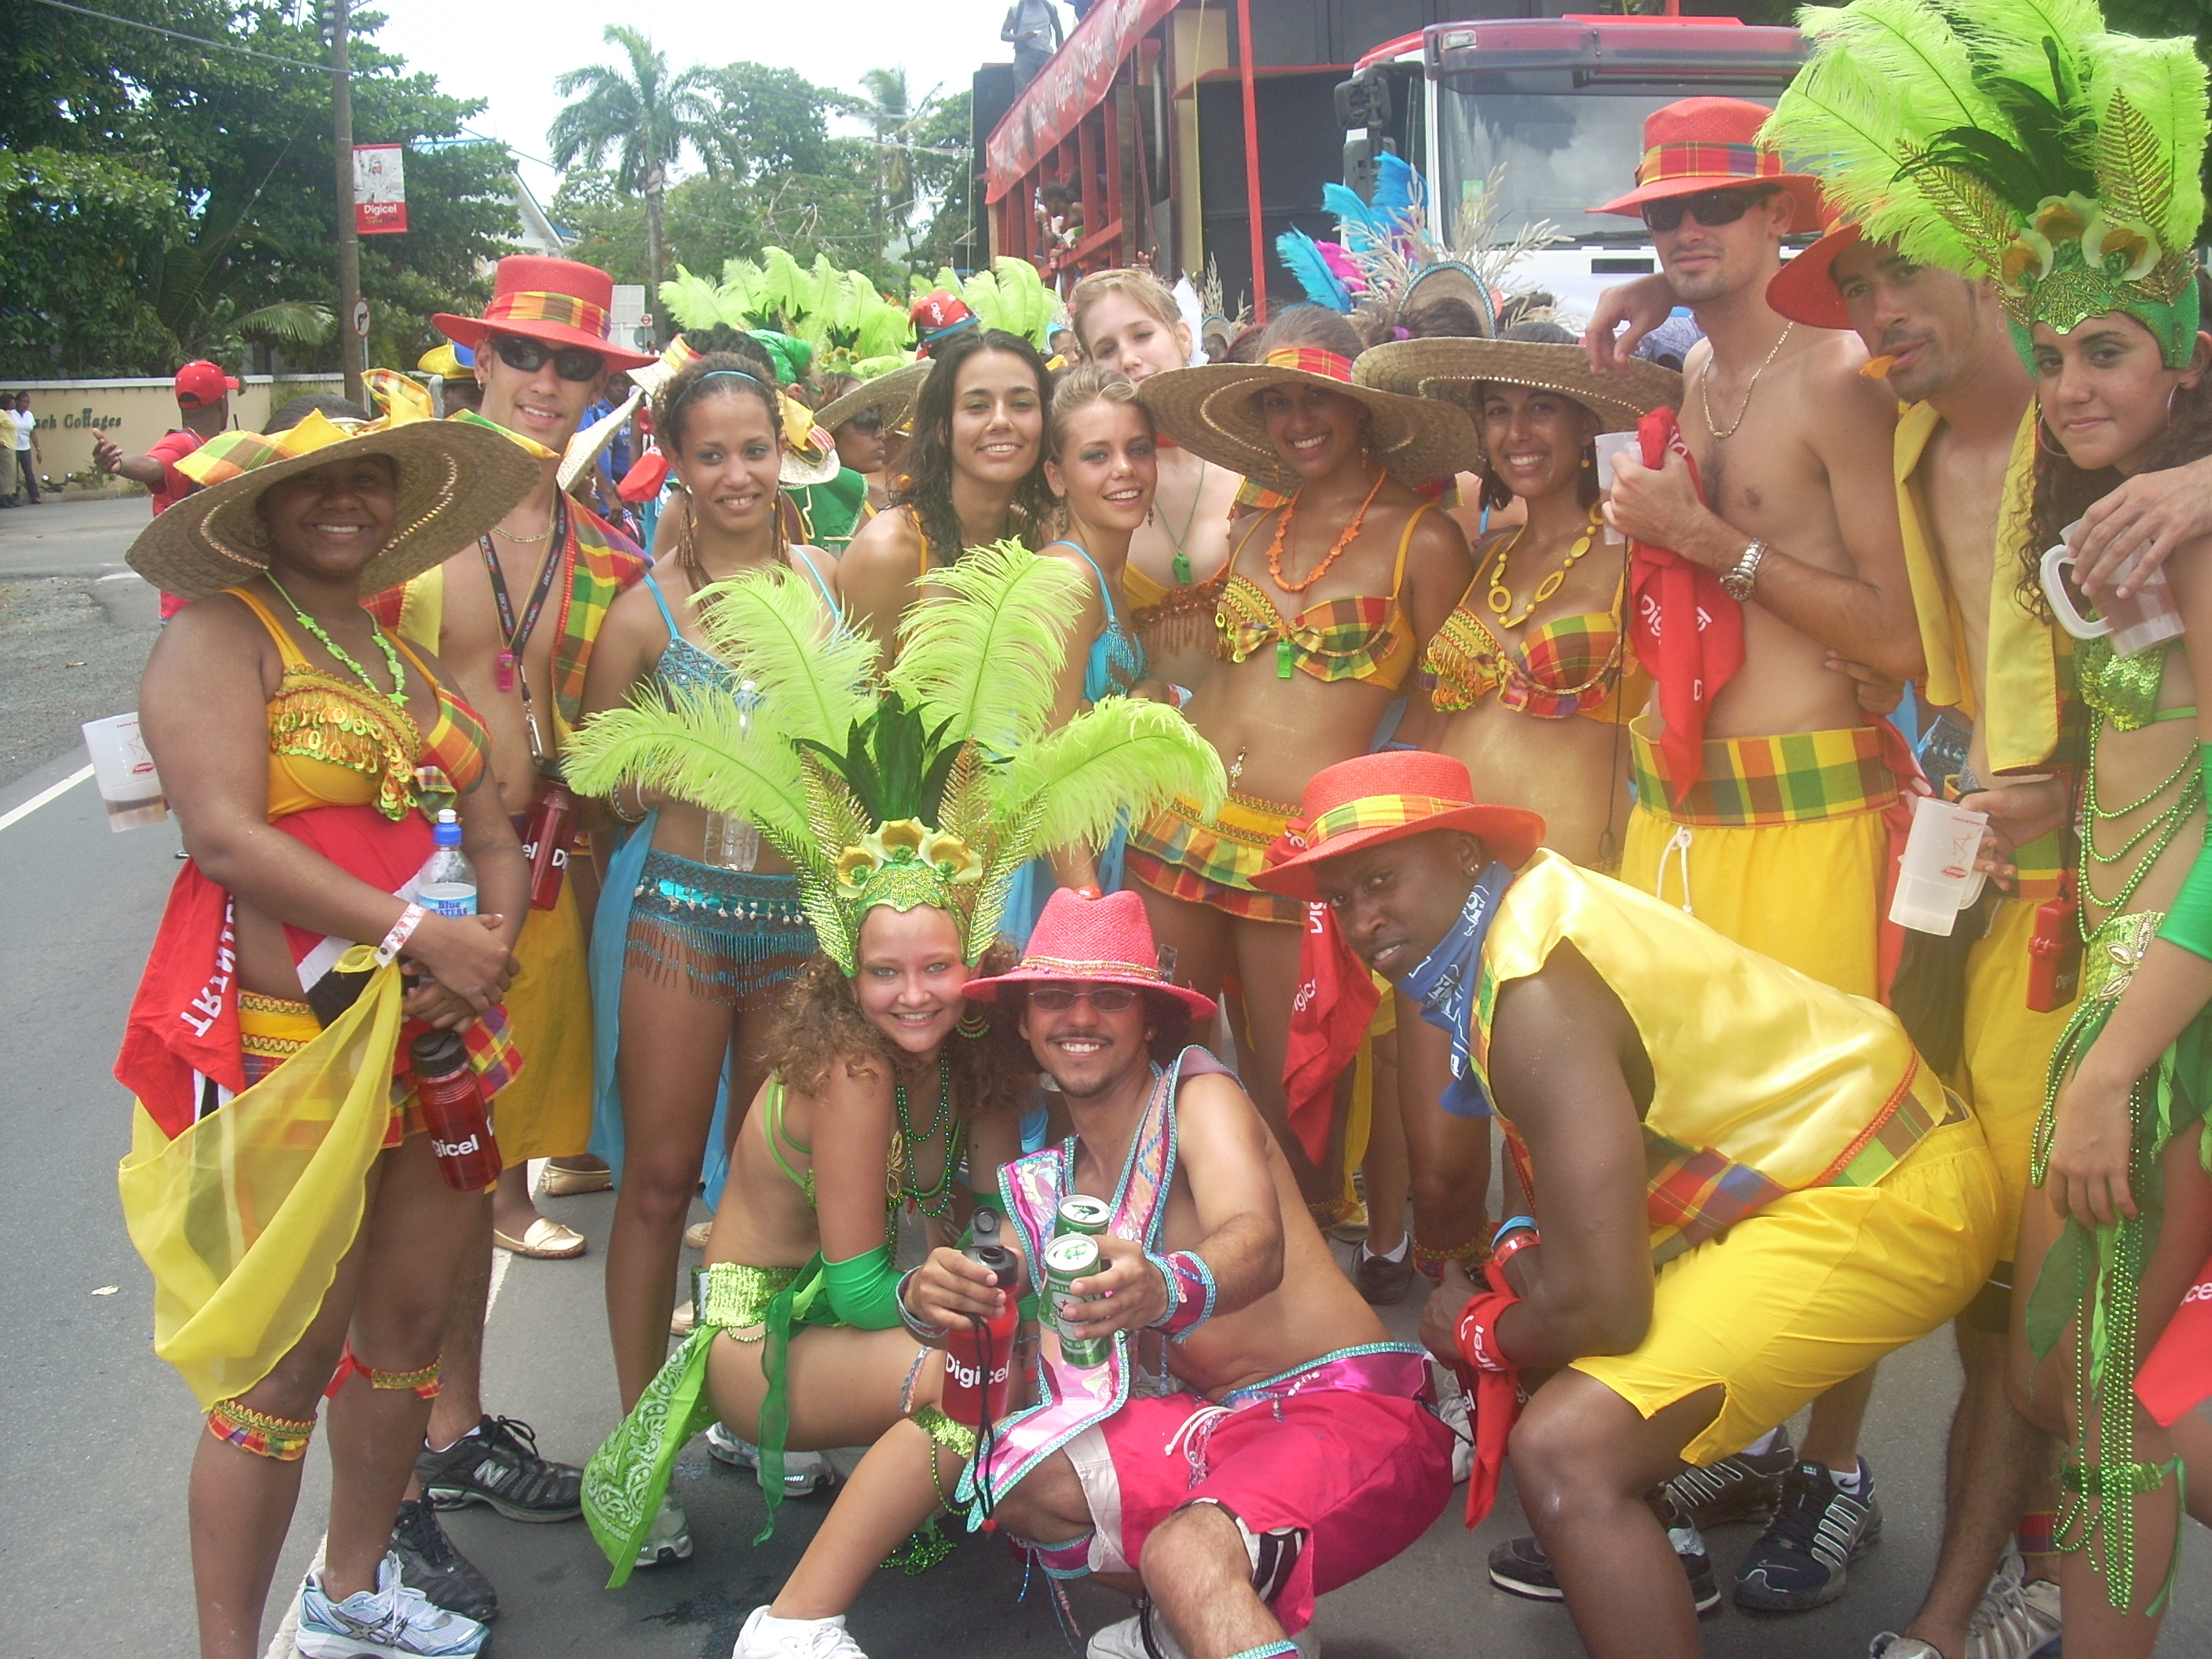 Live on Myxradio.com Groovy Soca from Summer 2k8